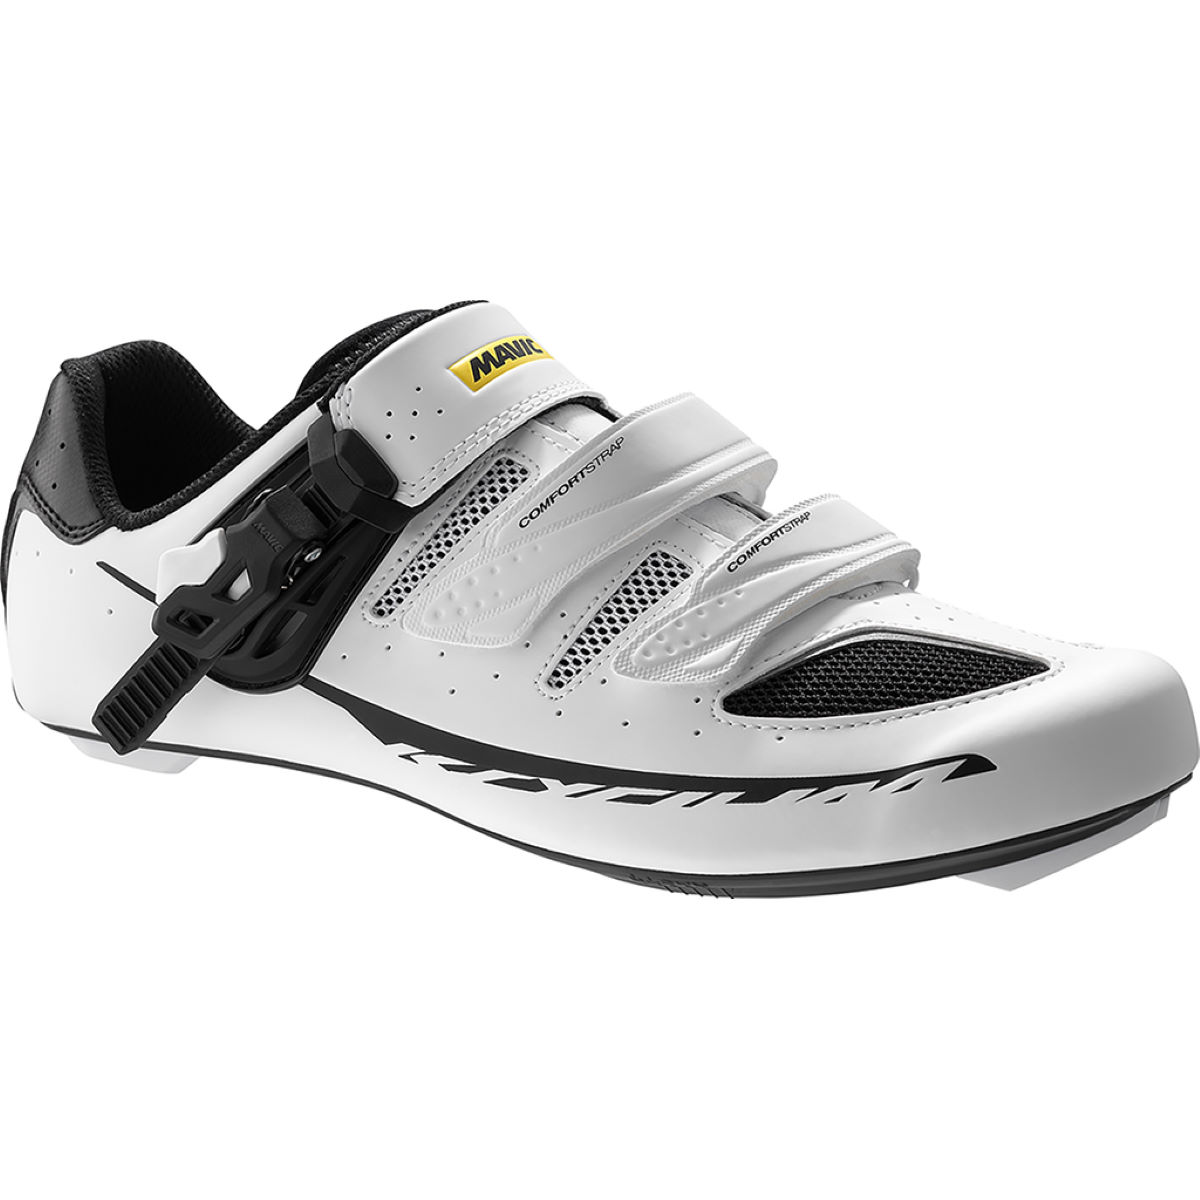 Chaussures Mavic Ksyrium Elite Maxi Fit II - 11,5 UK Blanc Chaussures de route